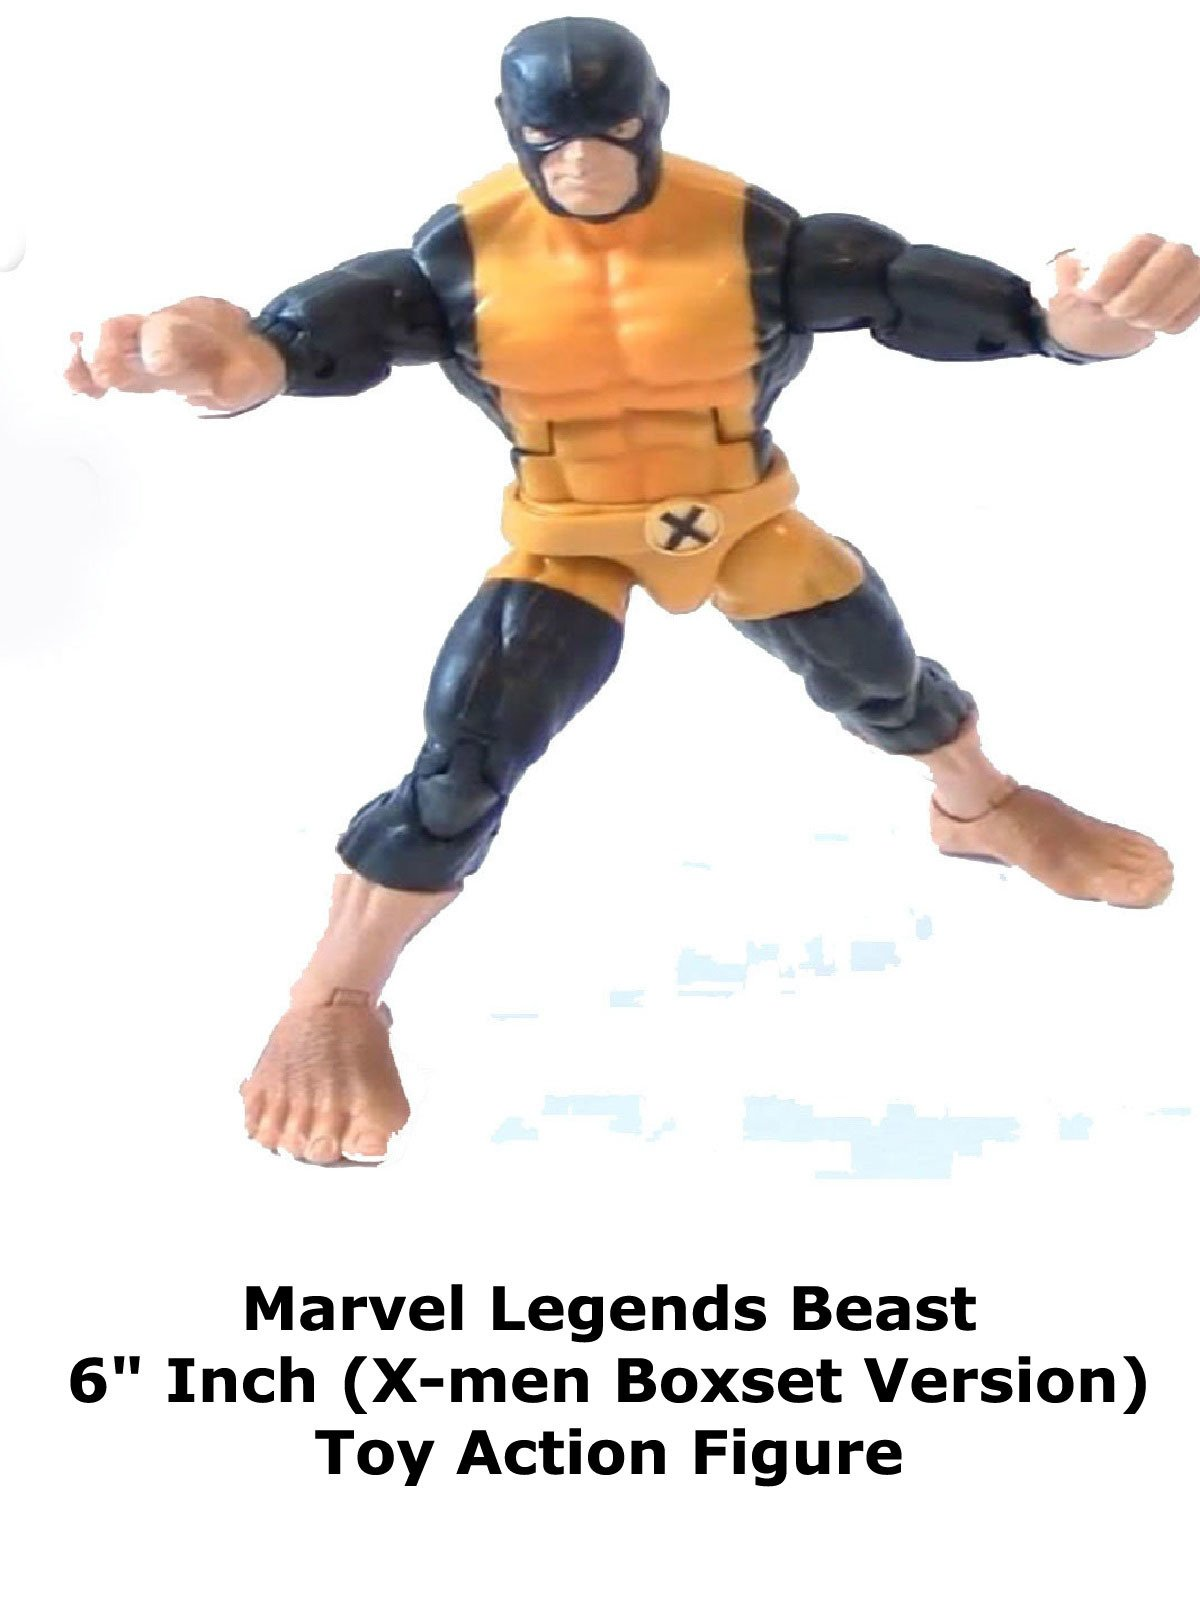 "Review: Marvel Legends Beast 6"" Inch (X-men Boxset Version) Toy Action Figure"